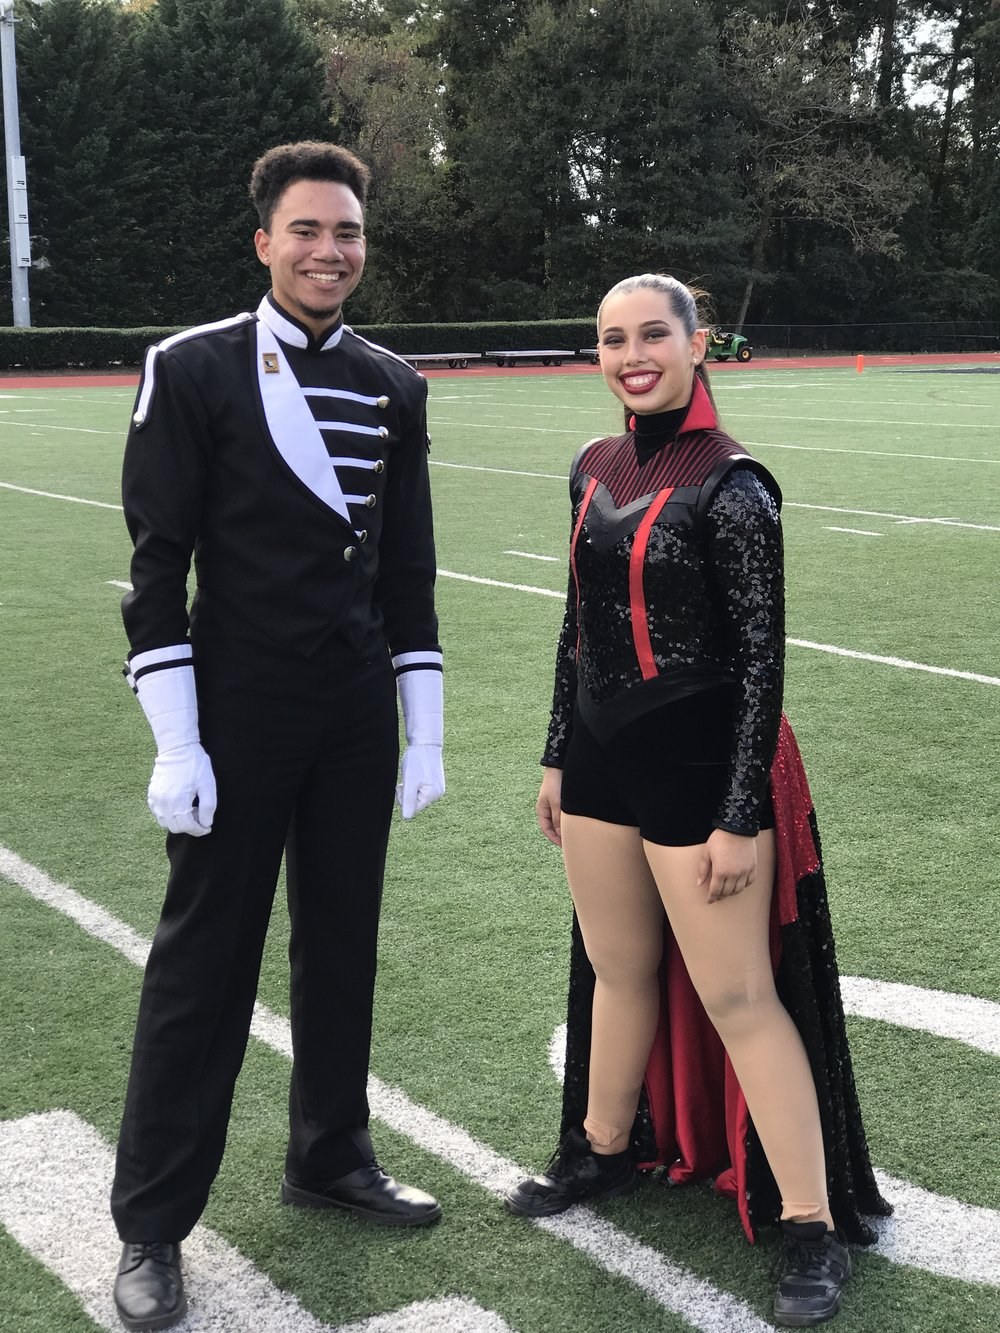 Seniors Astrid Garavis and Ty Scott. Recipients of the QuestBridge Academic Scholarship. Participated in all four years of band and colorguard.